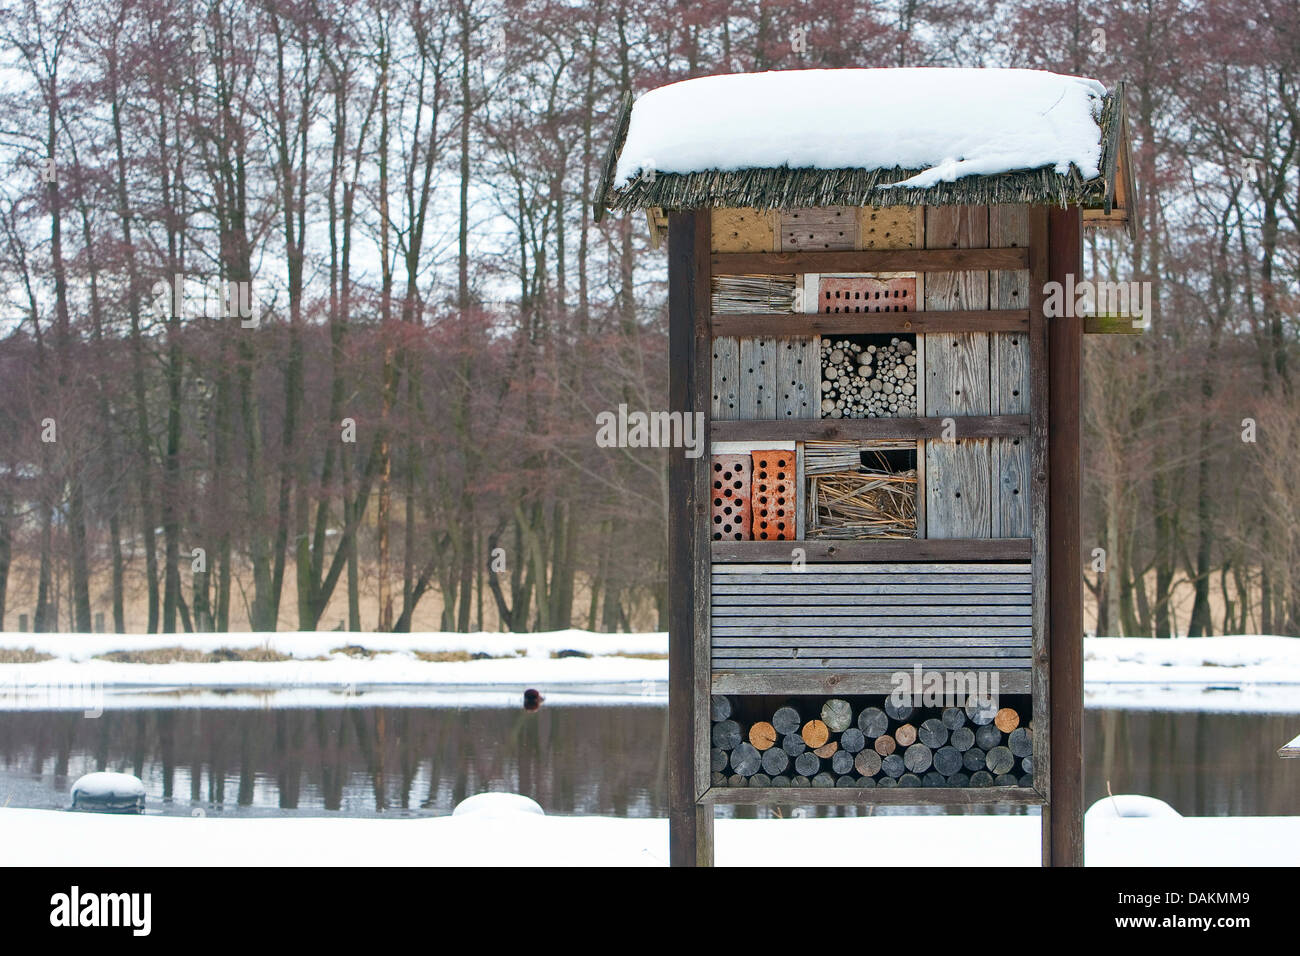 insect hotel in winter with snow, Germany - Stock Image